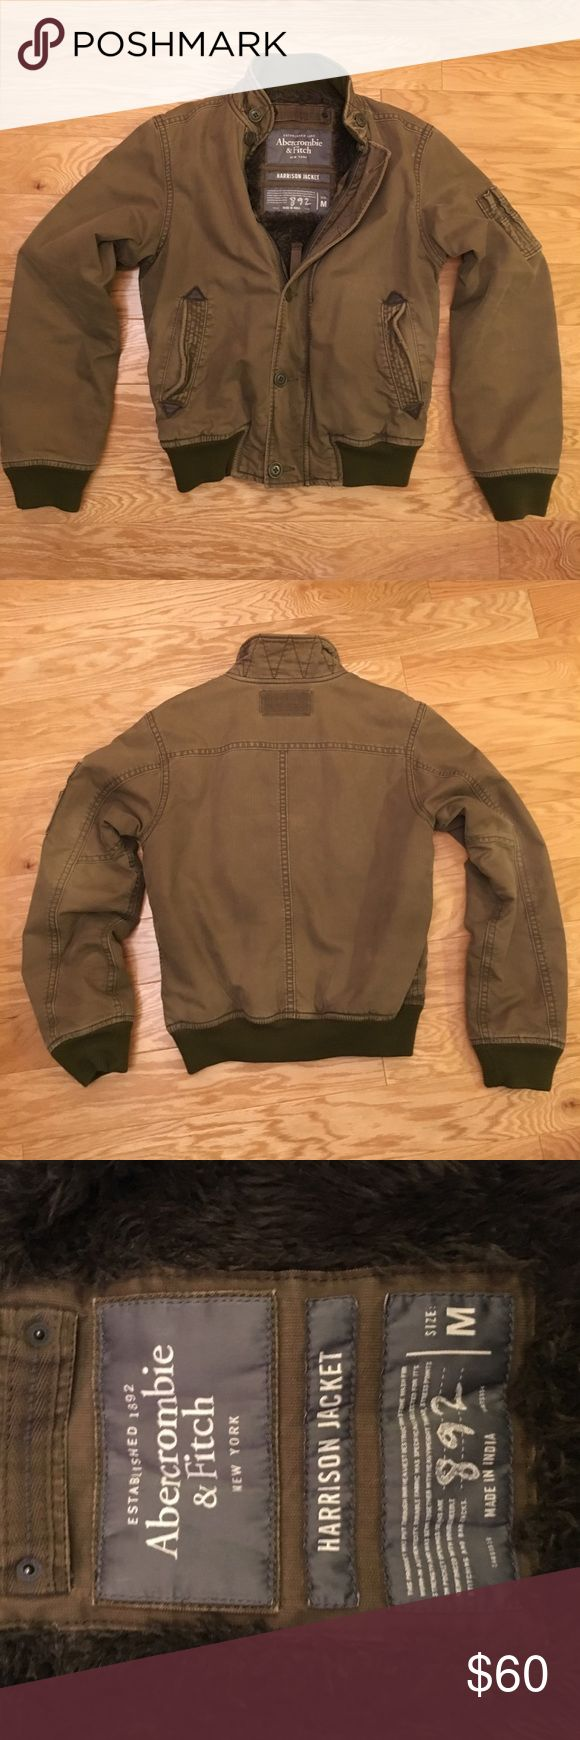 Abercrombie & Fitch Harrison Jacket Olive Abercrombie & Fitch Harrison winter jacket Abercrombie & Fitch Jackets & Coats